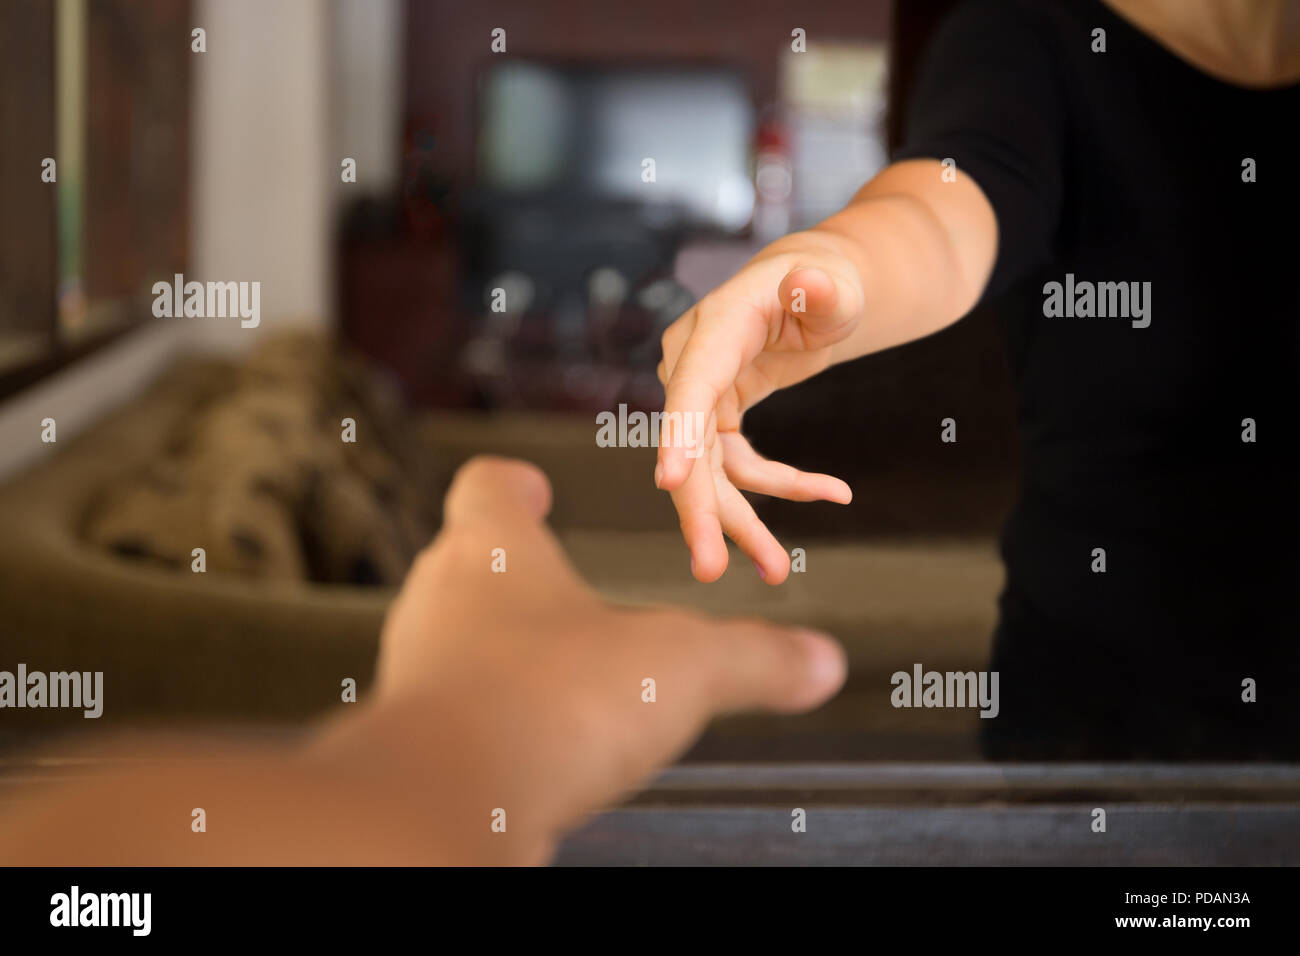 Male hands reaching out to help woman from inside. - Stock Image